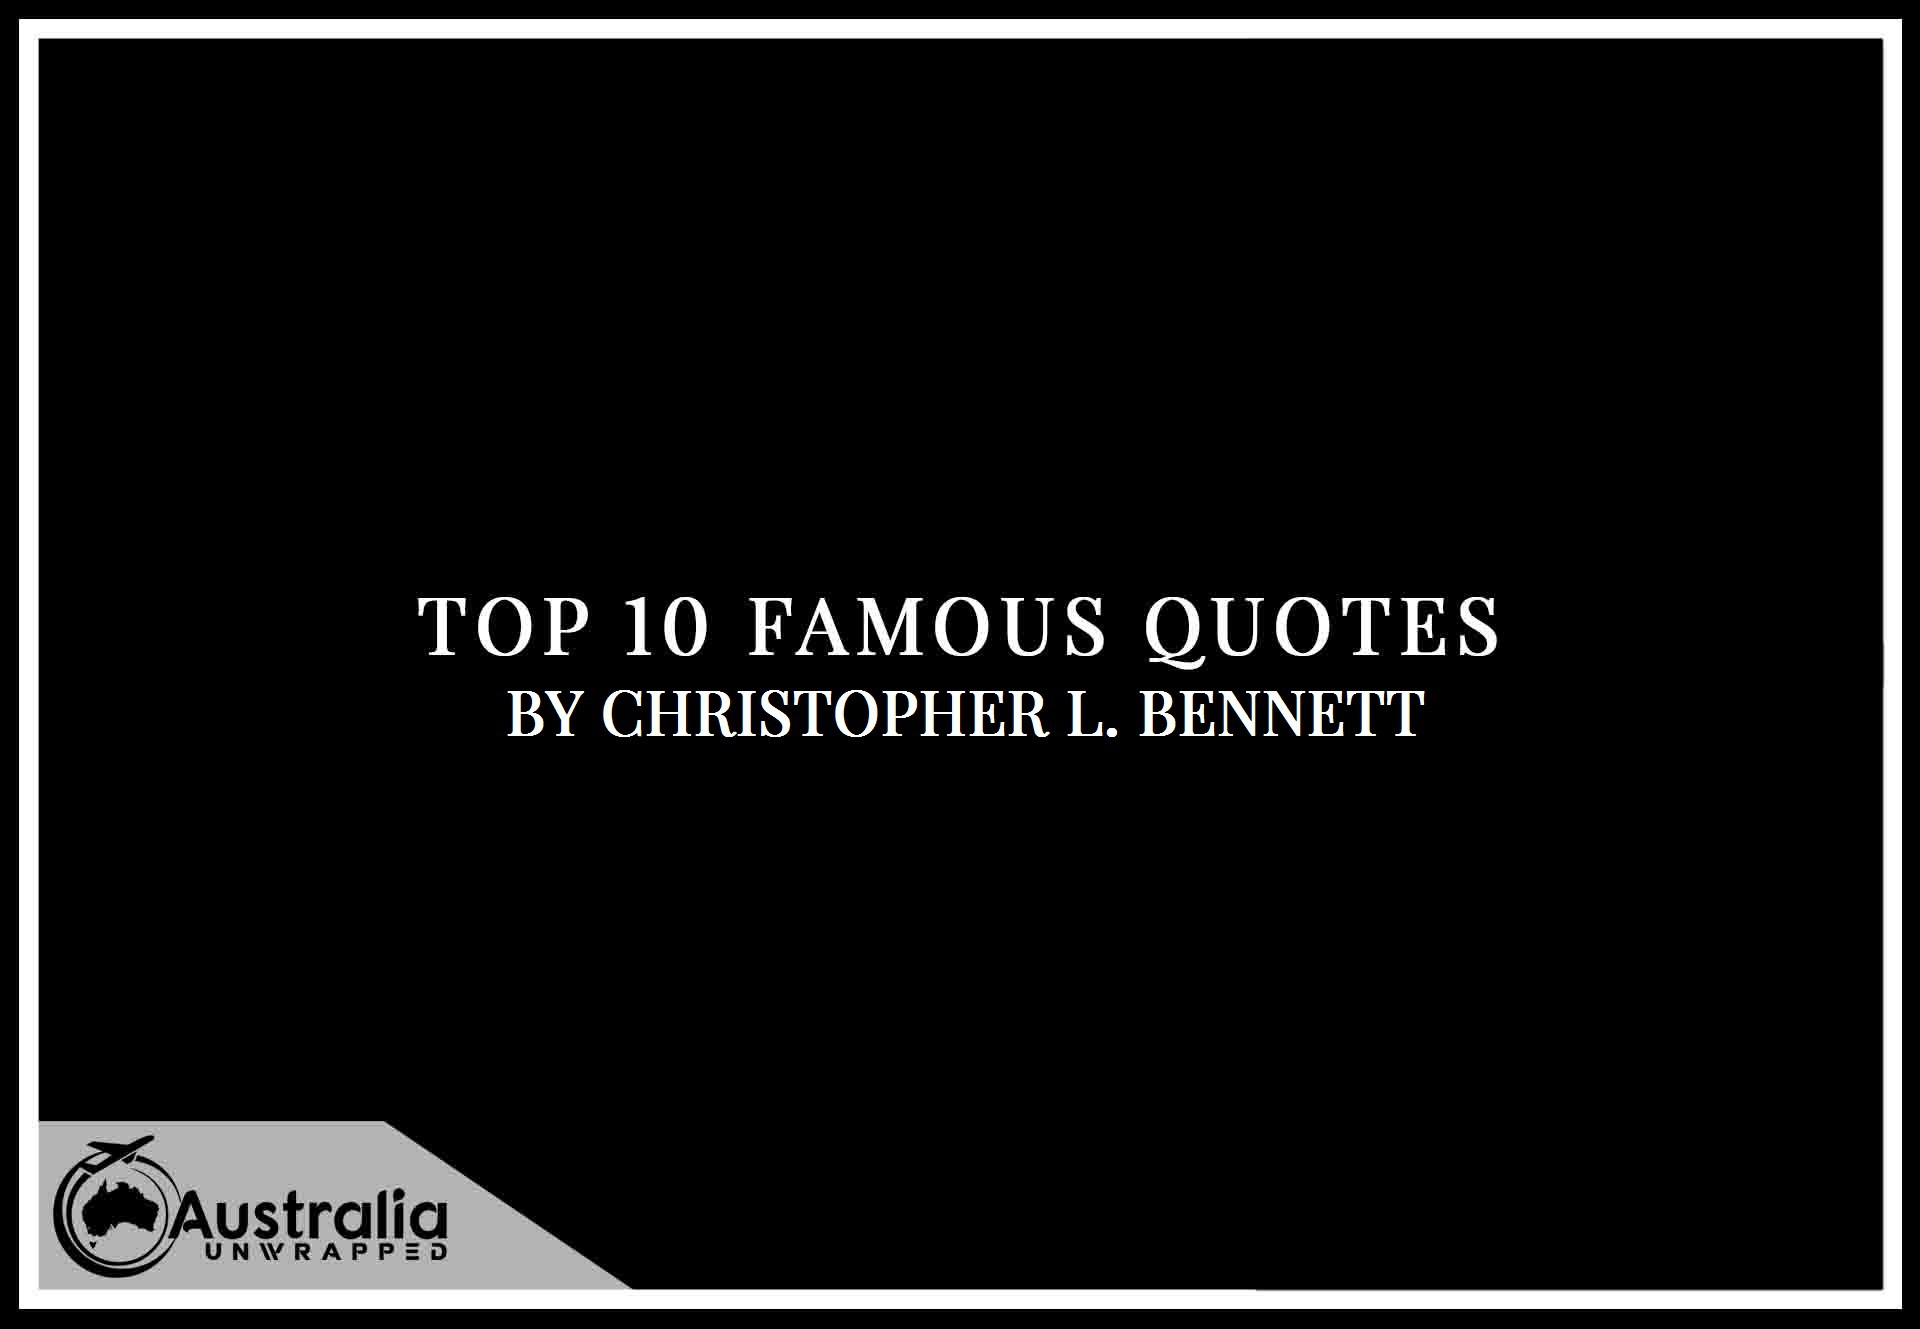 Christopher L. Bennett's Top 10 Popular and Famous Quotes